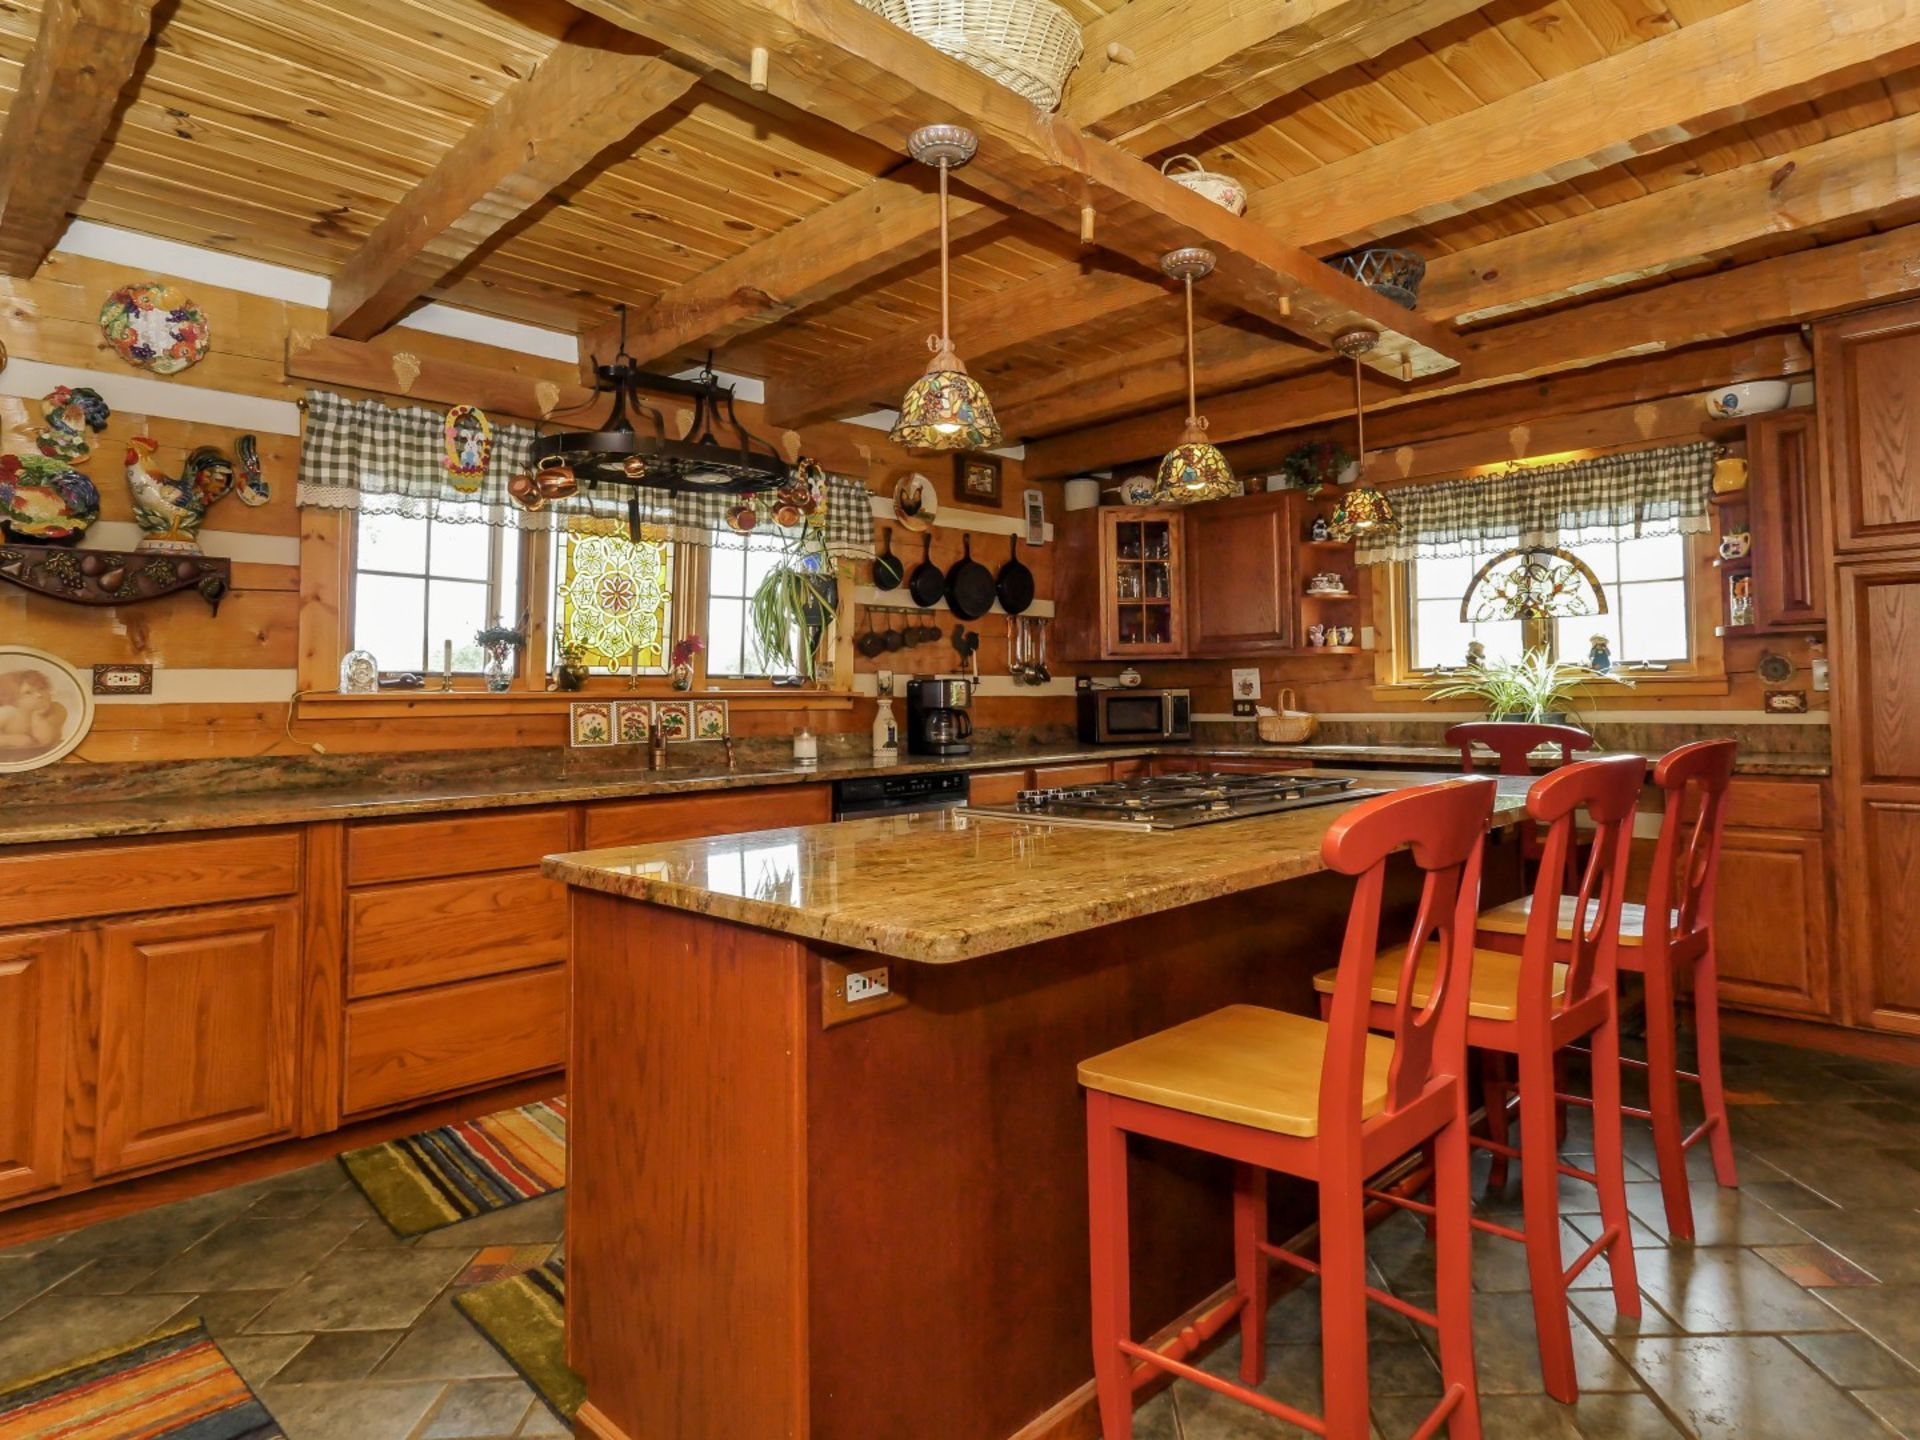 SOLD – Check out 1445 Fennel Rd Pennsburg Video!